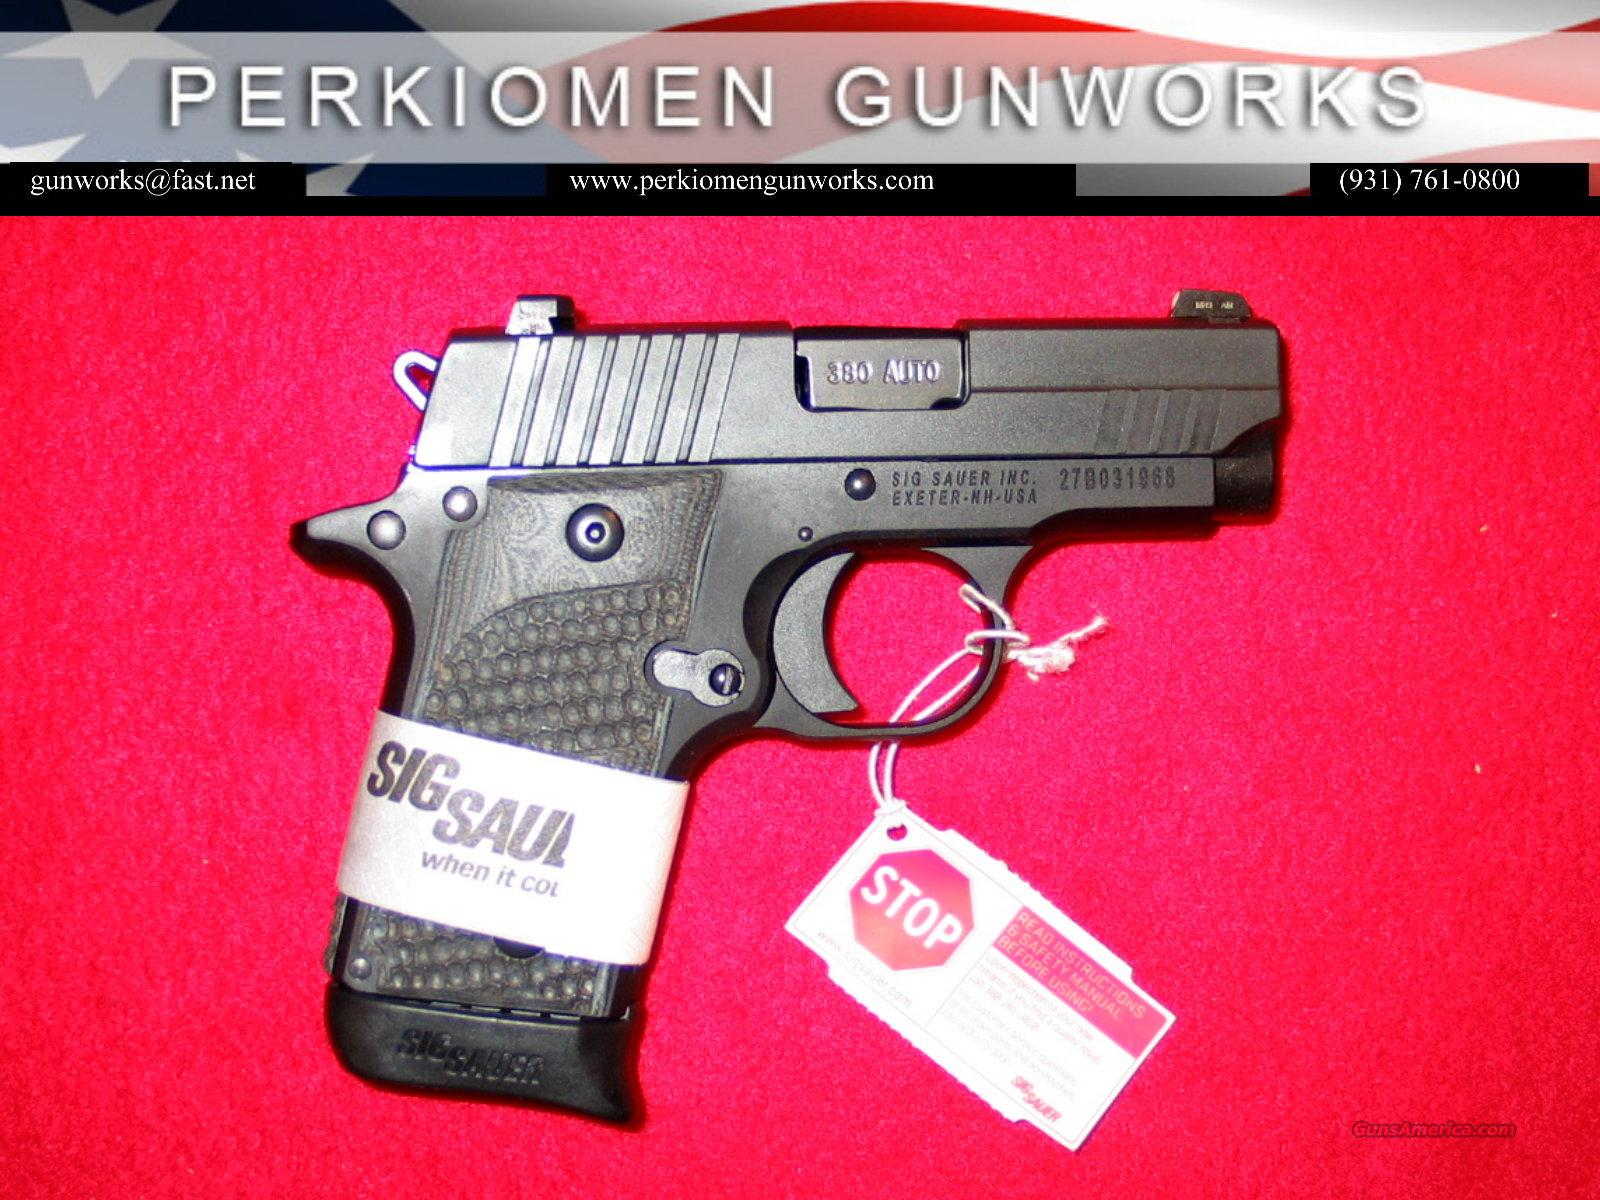 P238 Extreme .380, Nite Sights, New in Box  Guns > Pistols > Sig - Sauer/Sigarms Pistols > P238